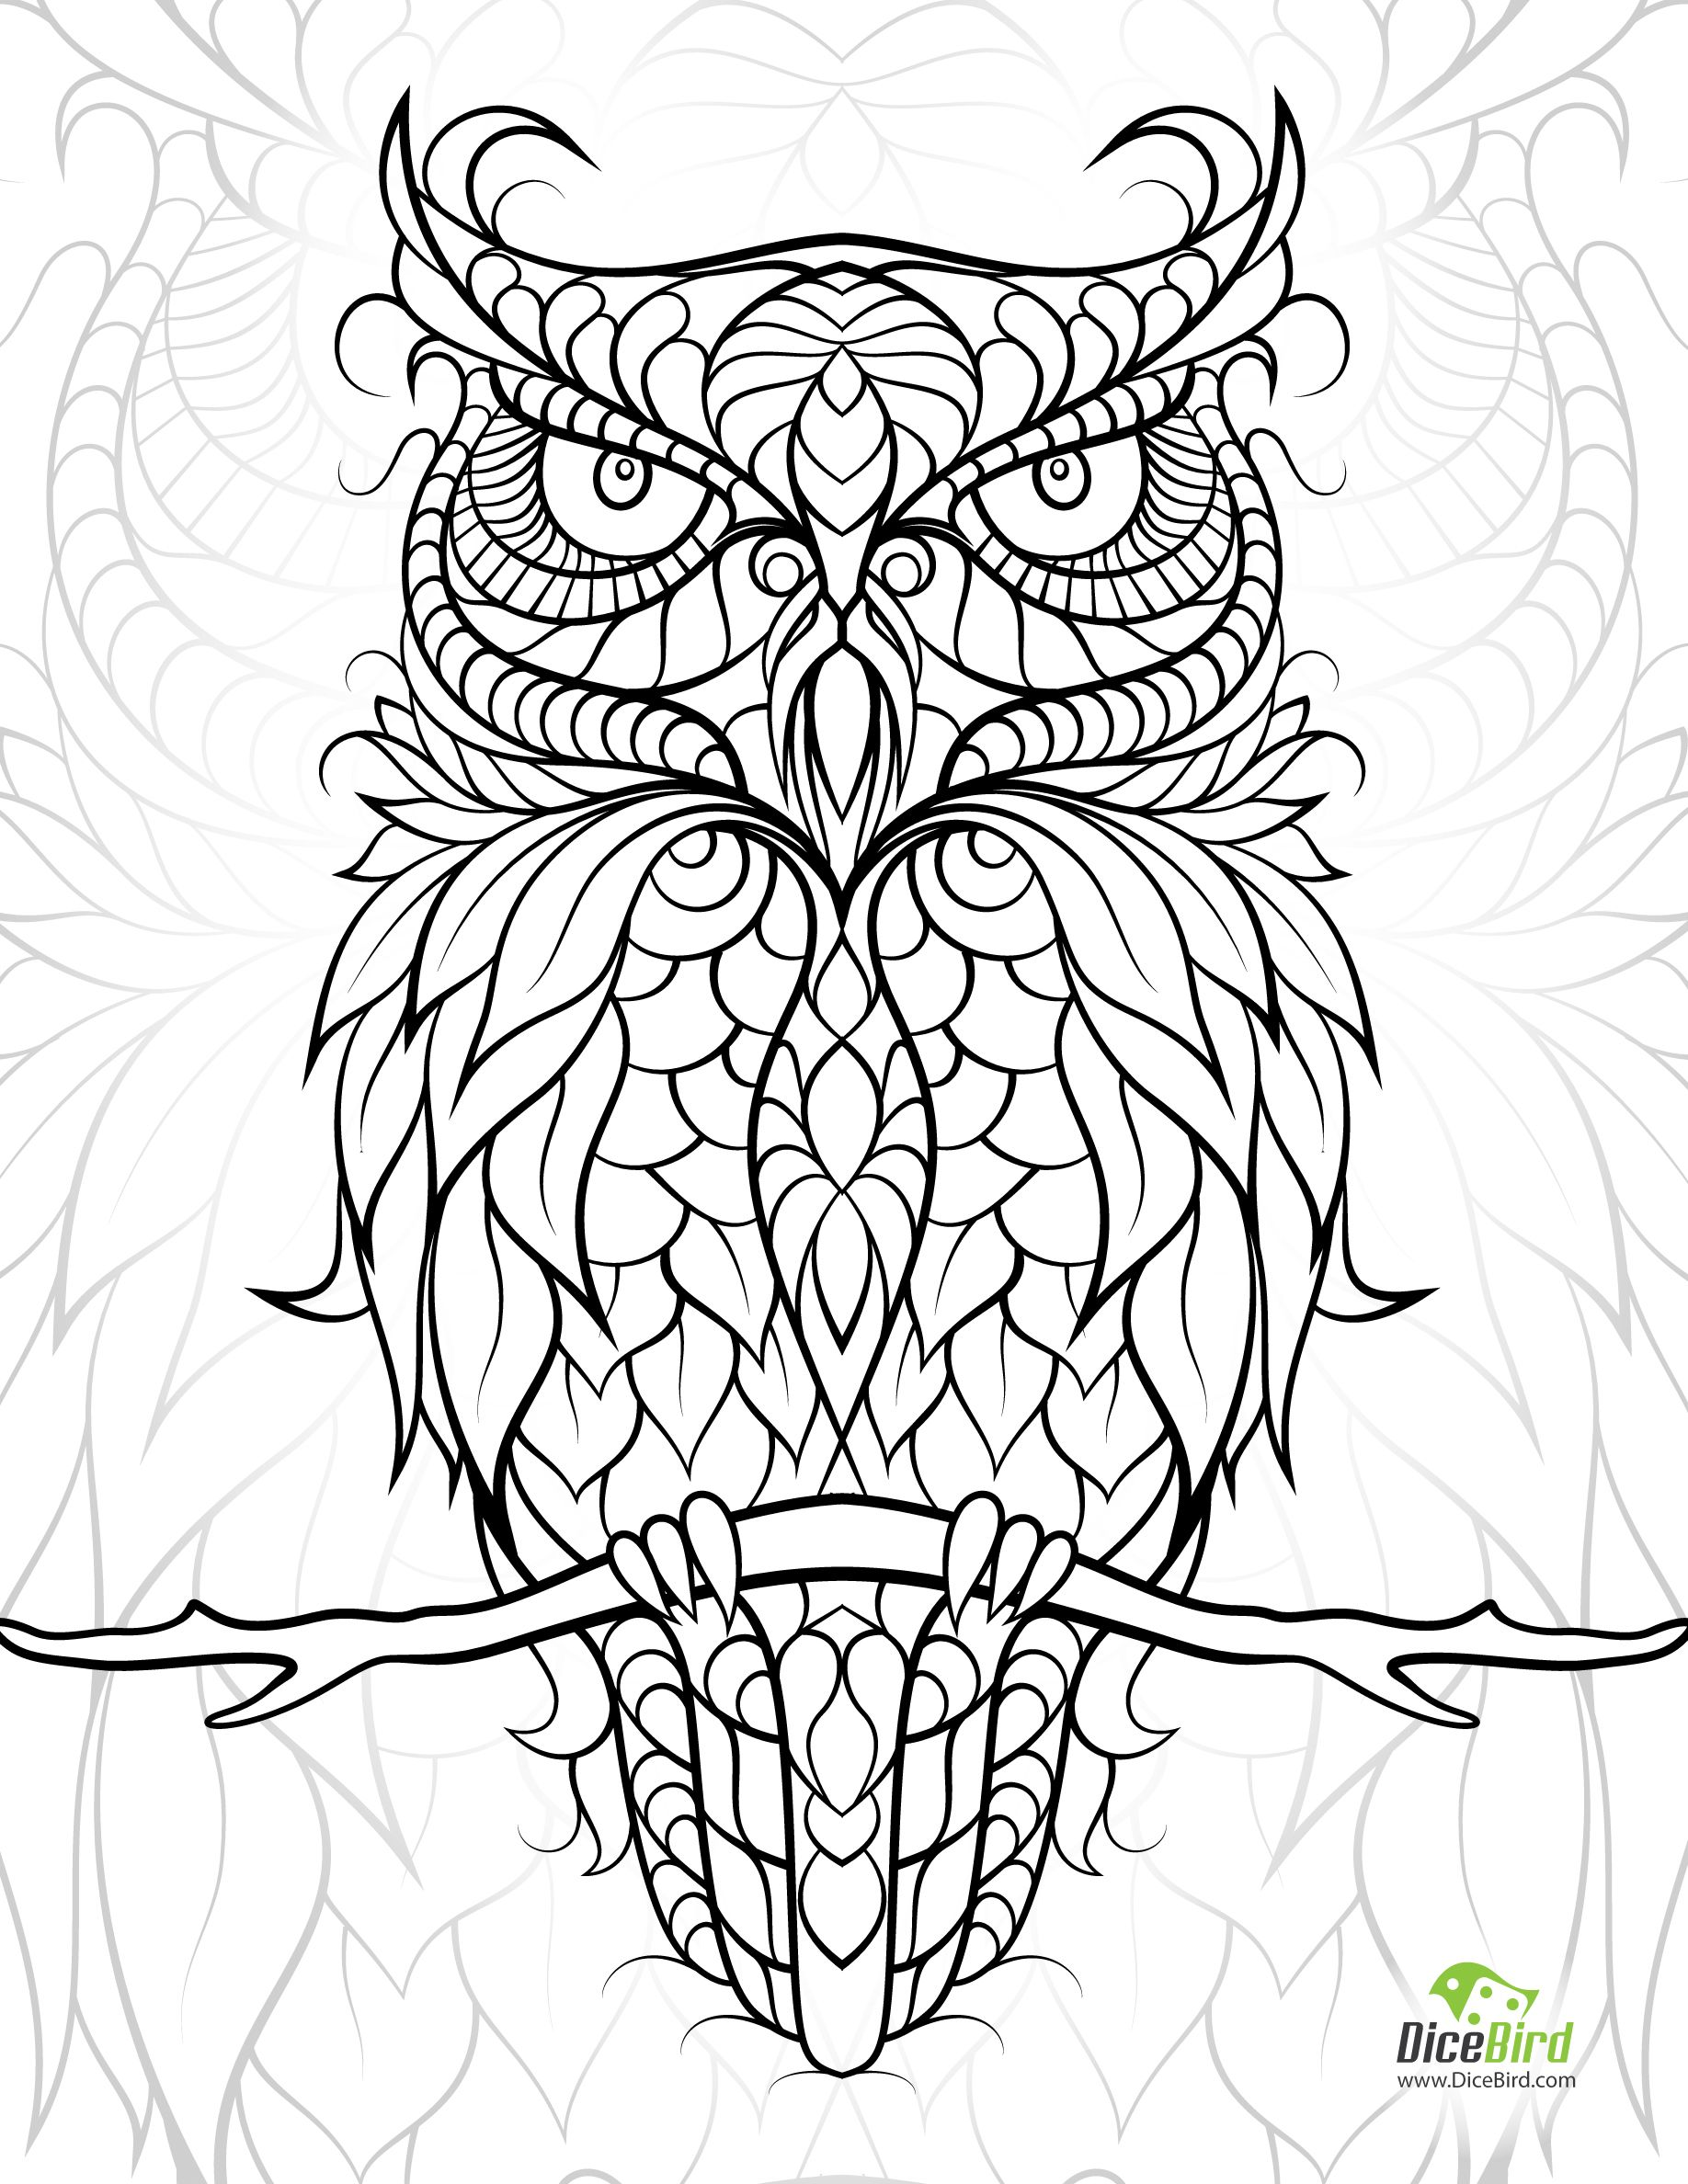 Owl coloring pages free - Owl Adult Coloring Book Pagesowl